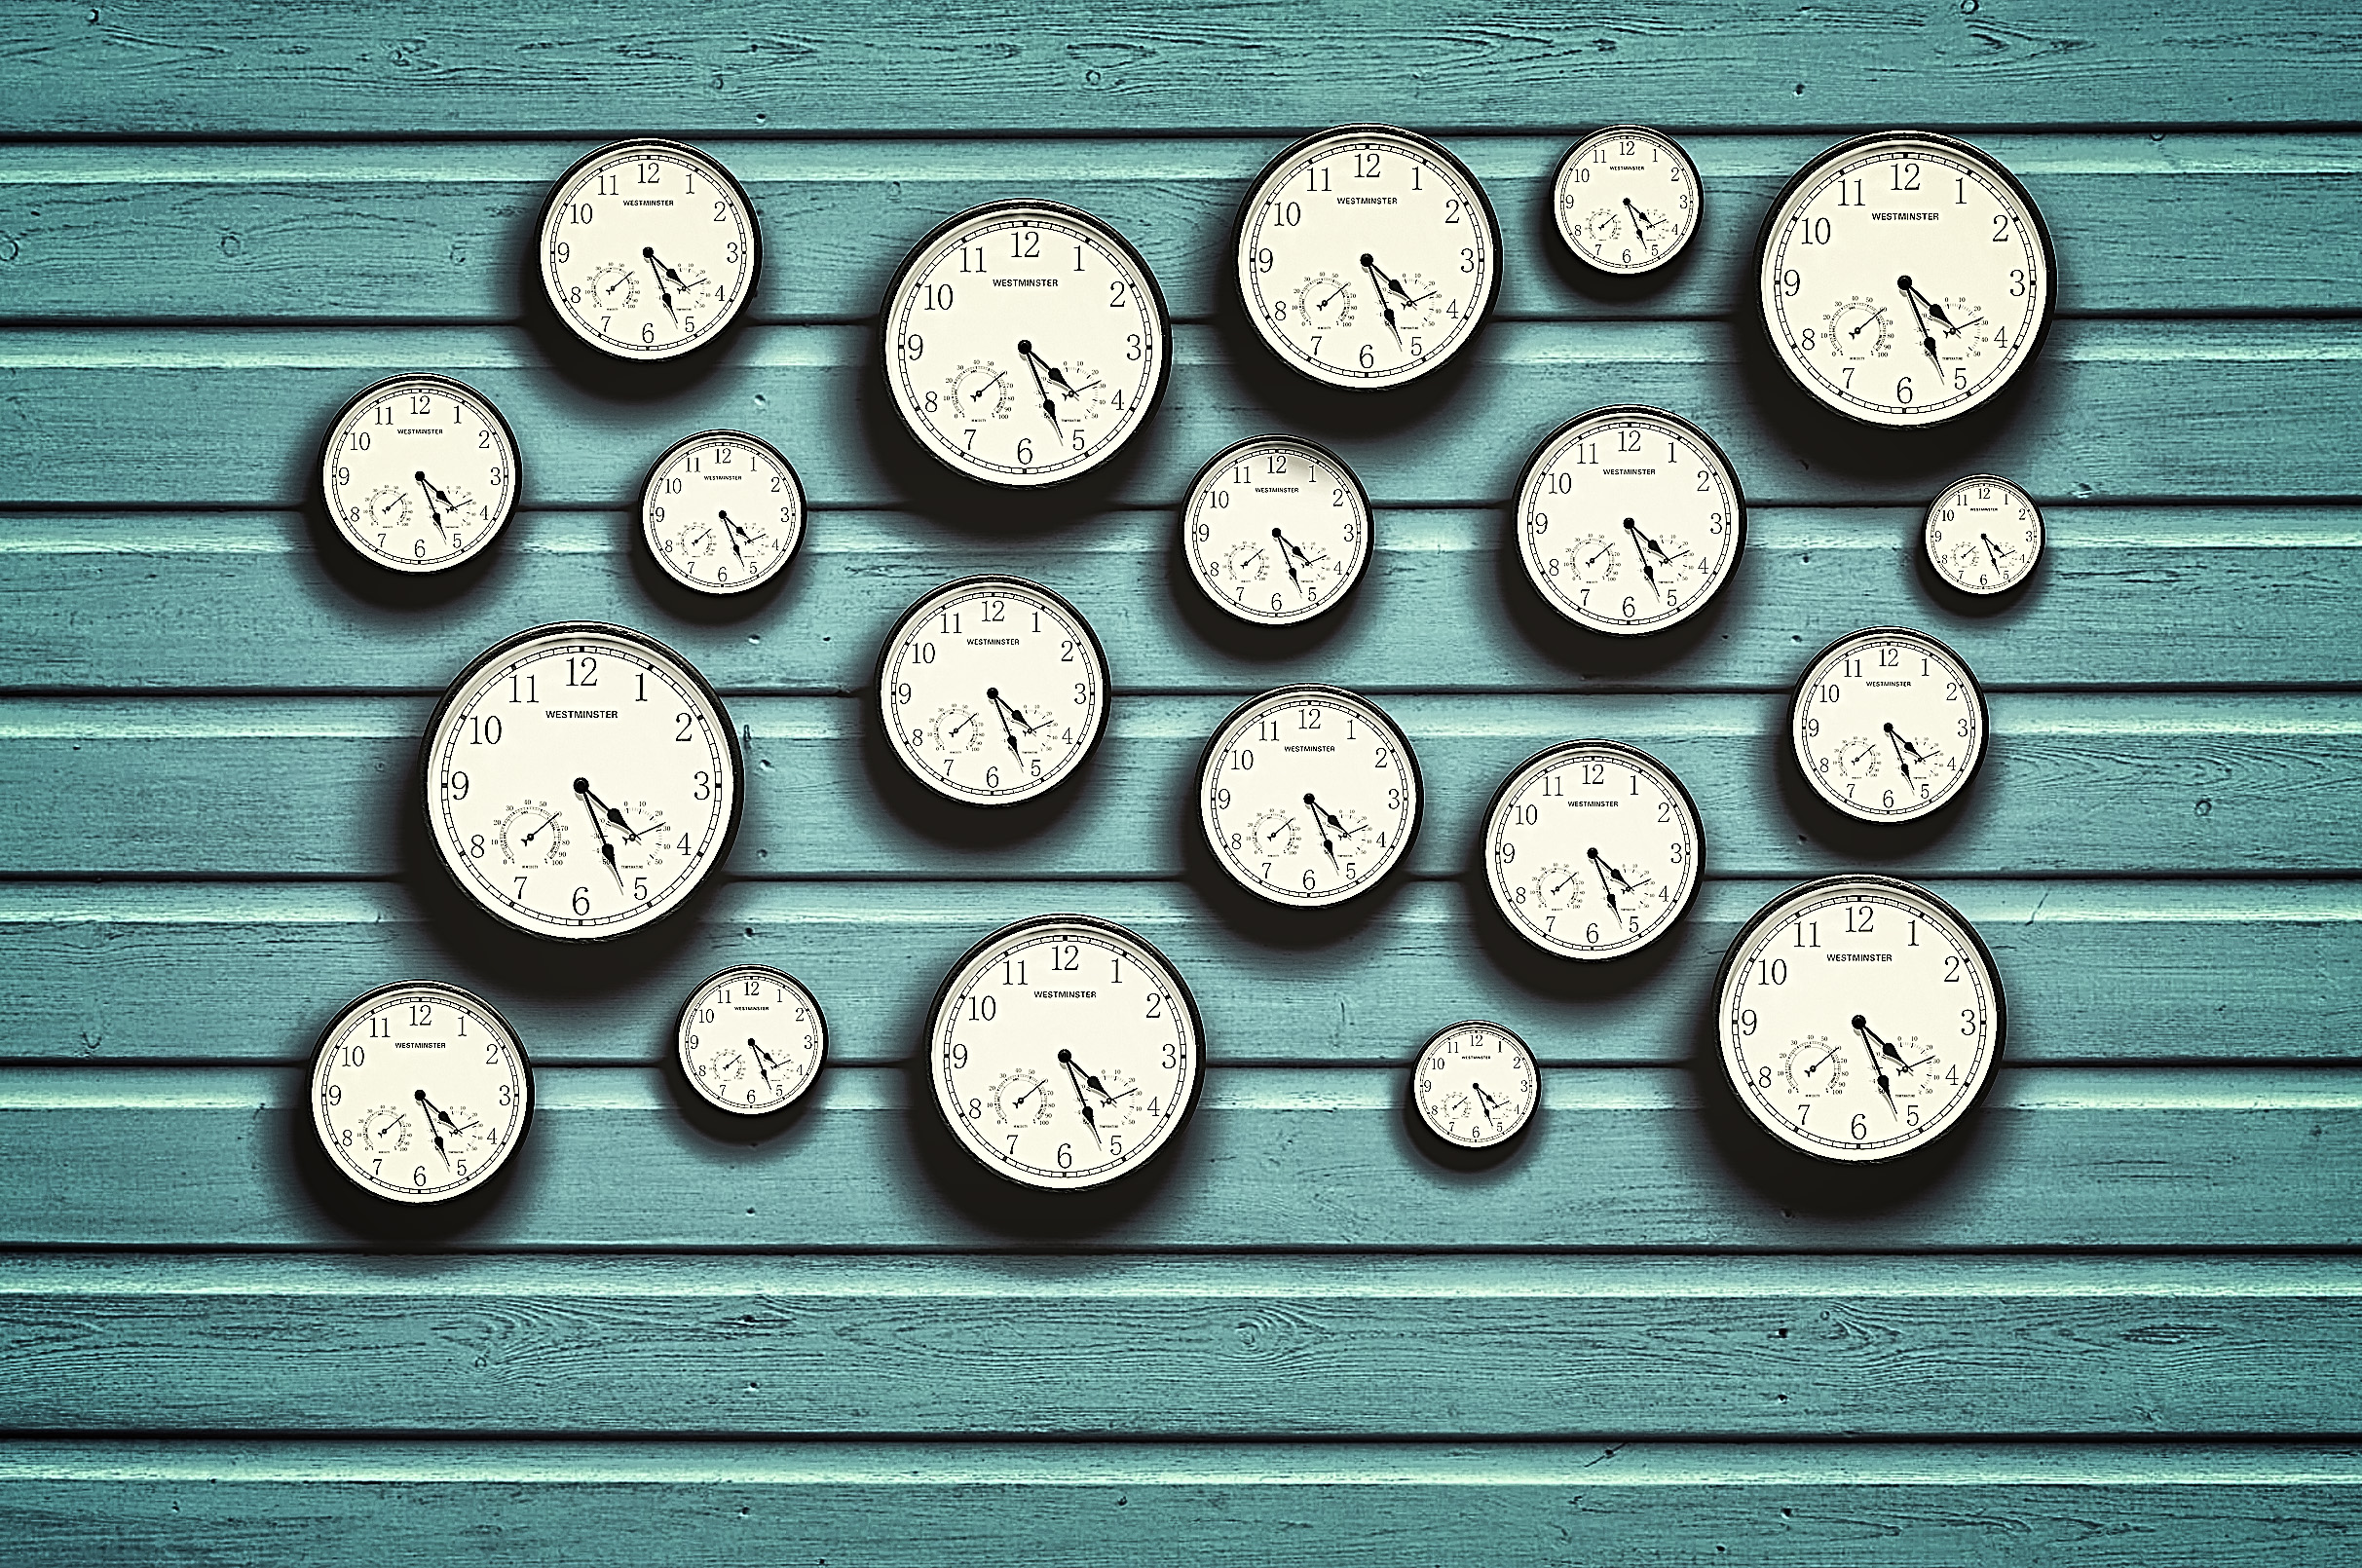 Many clocks in a blue wooden background photo